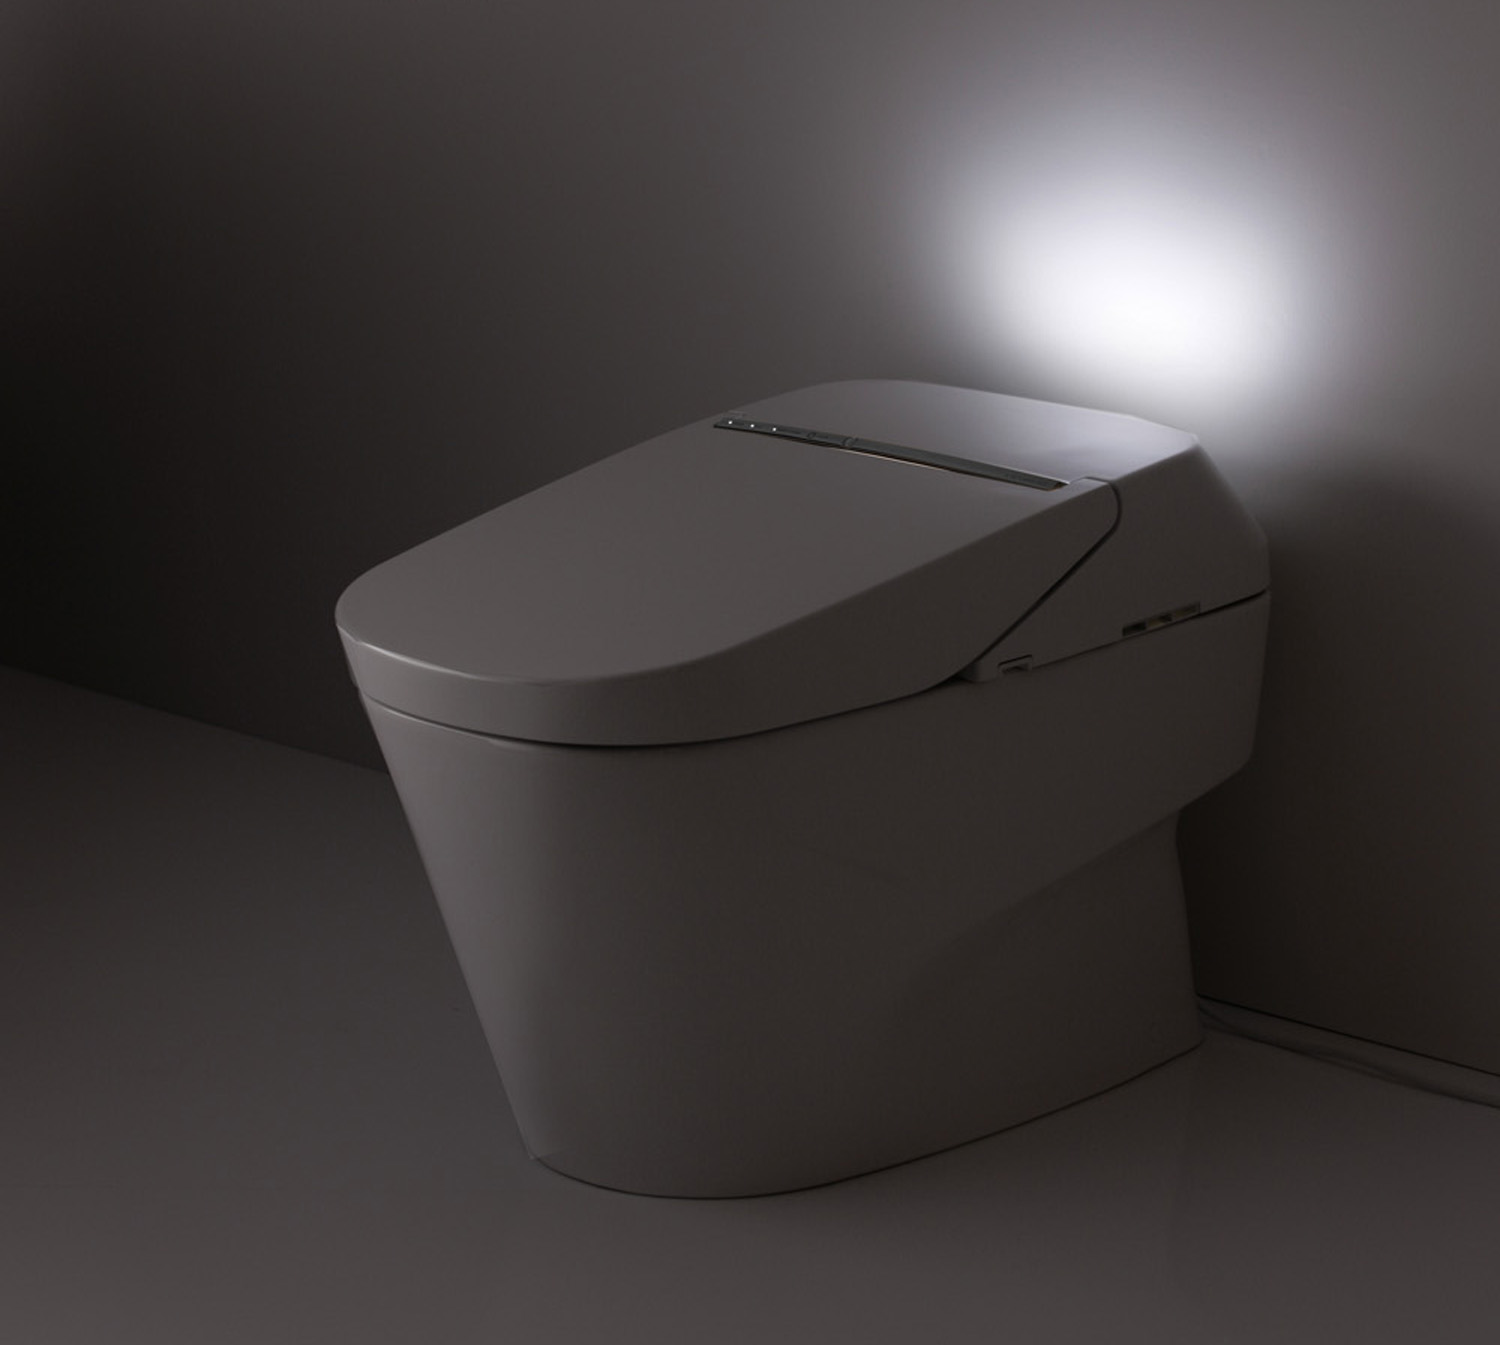 A Self Cleaning Toilet And Toto Dig This Design